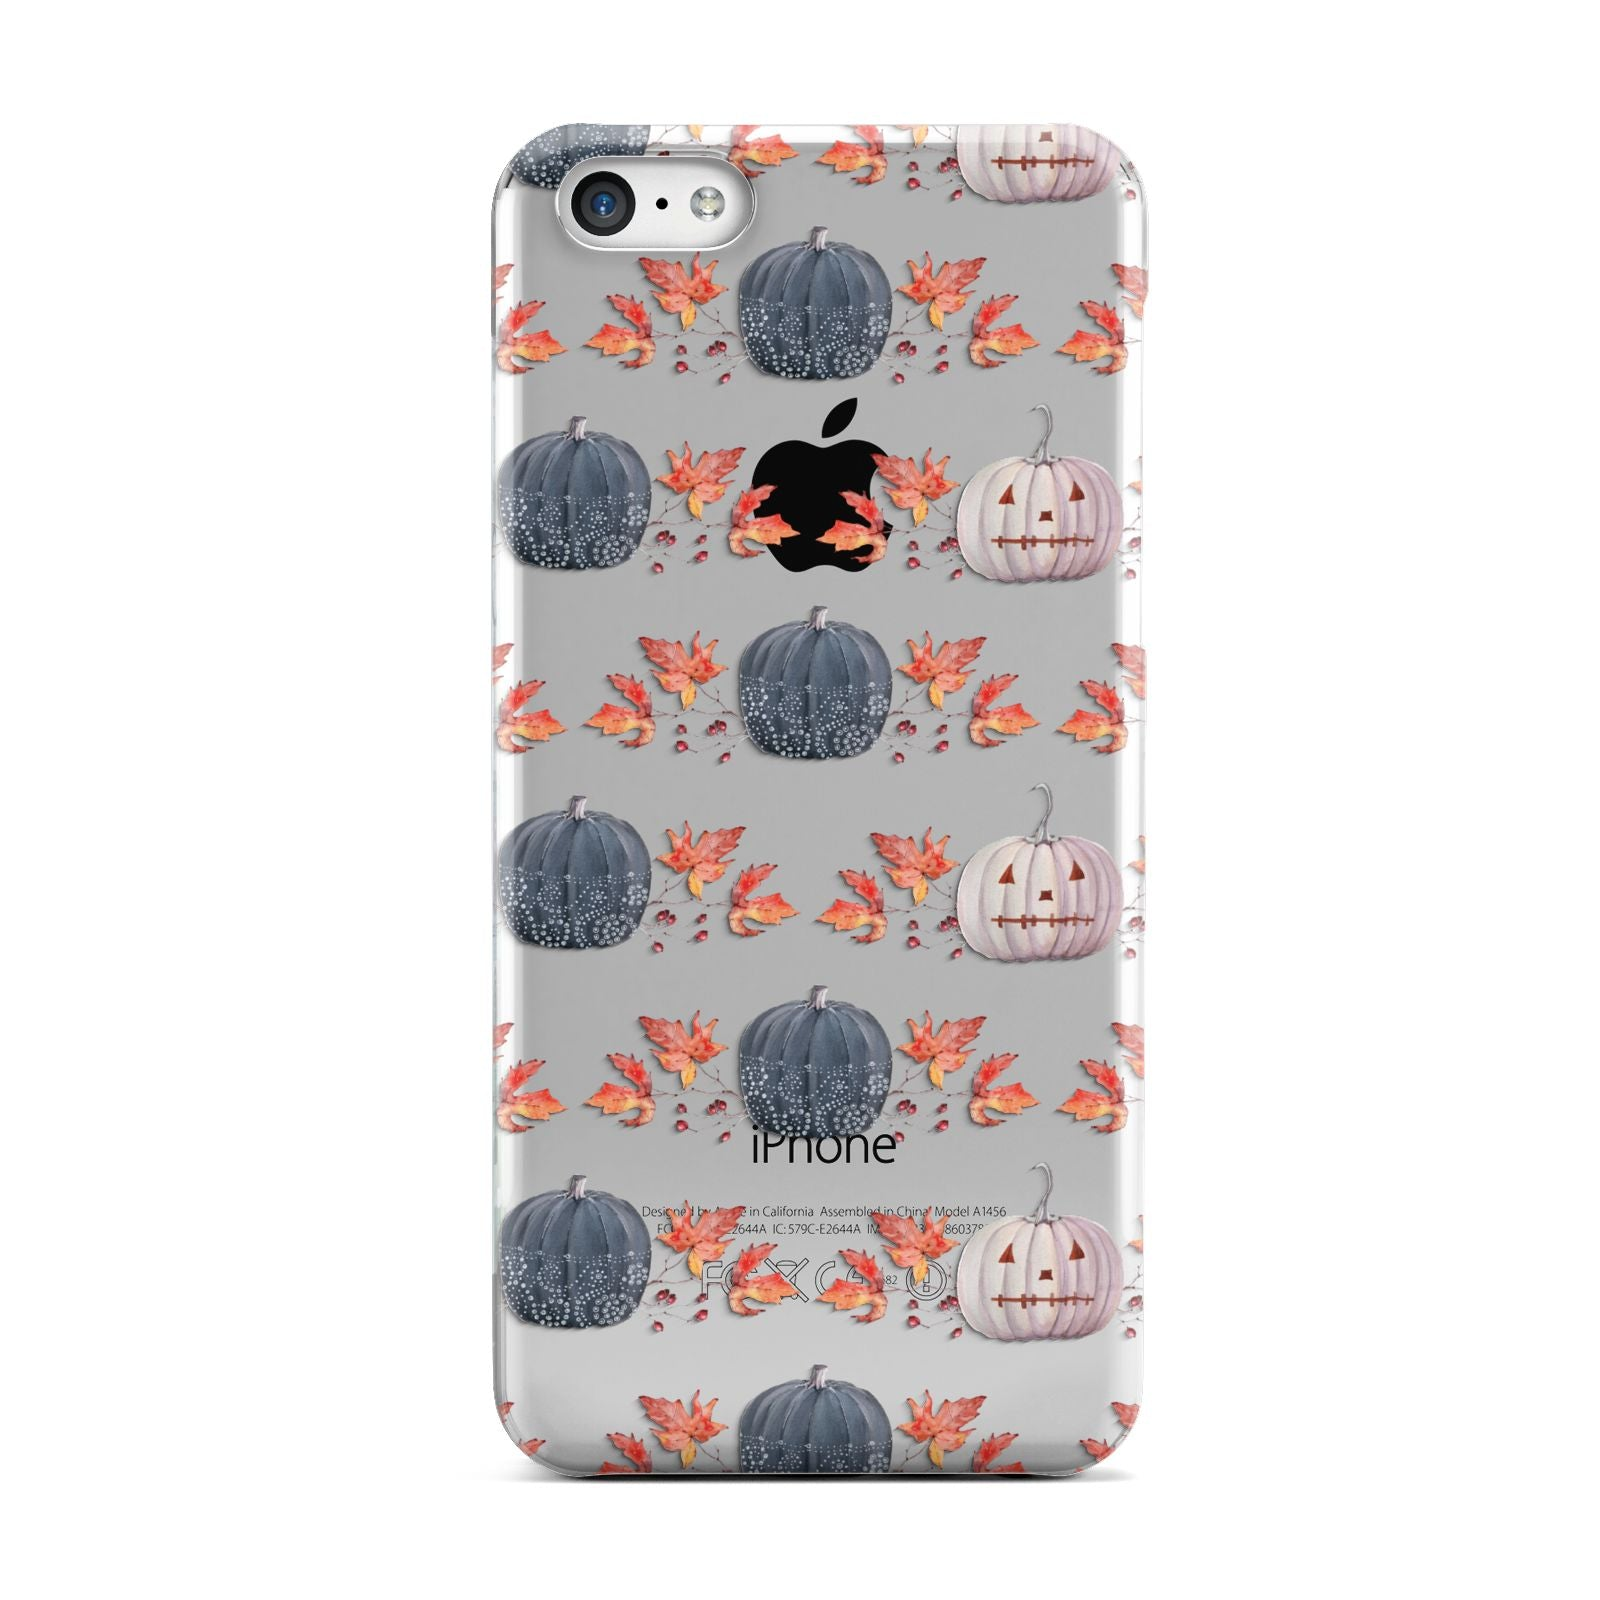 Pumpkin Autumn Leaves Apple iPhone 5c Case